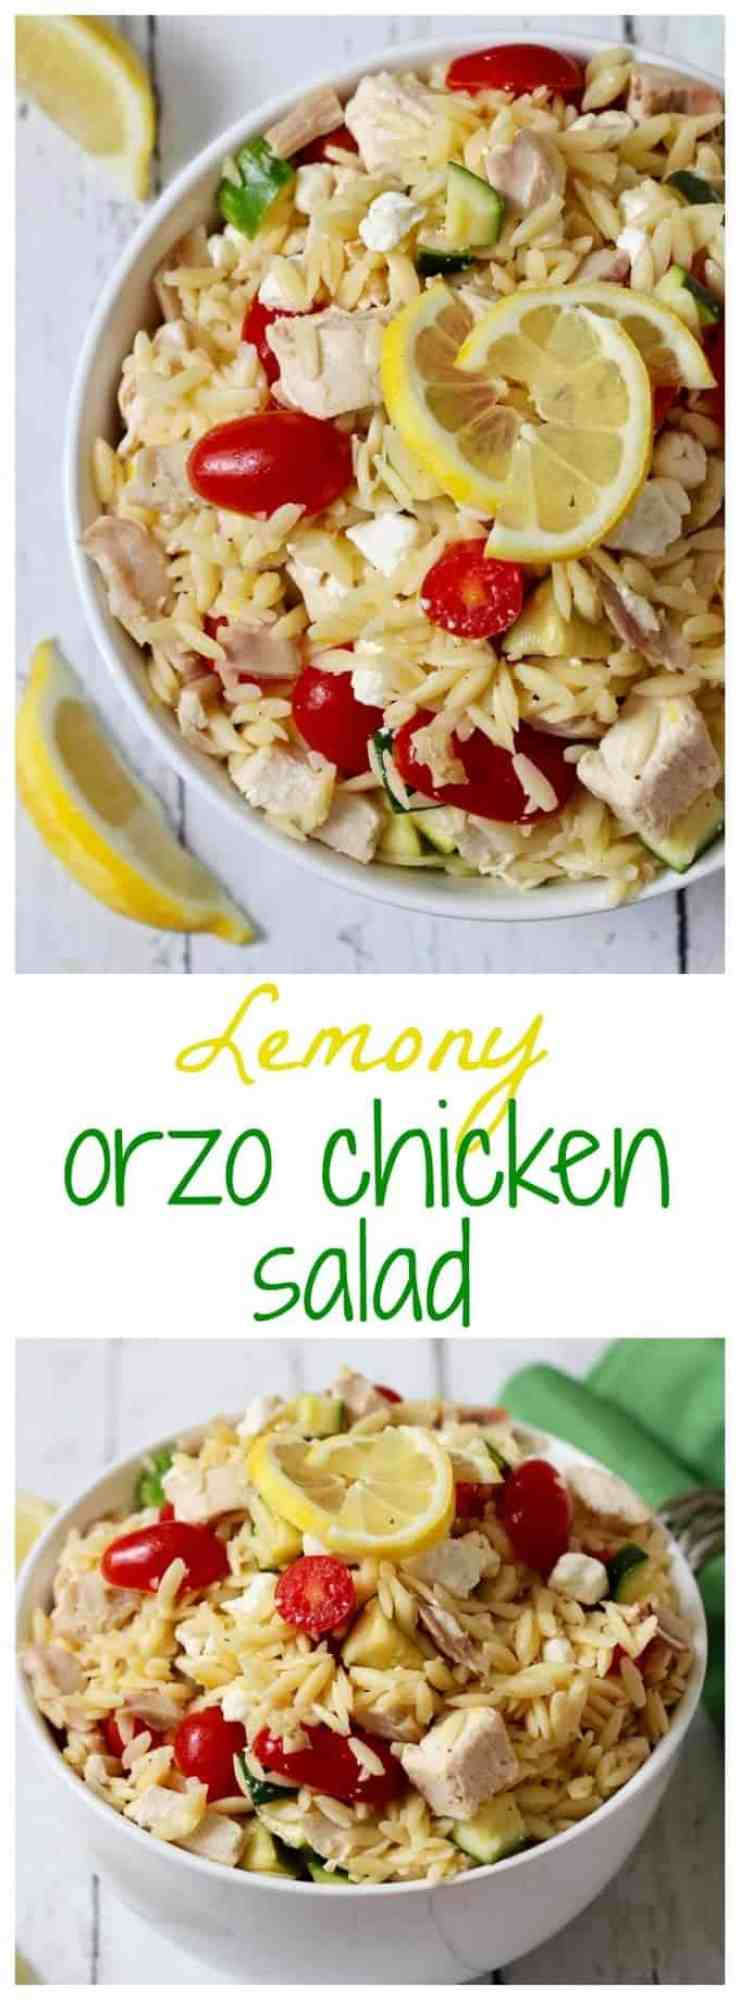 Lemony orzo chicken salad with tomatoes, zucchini and goat cheese - a ...